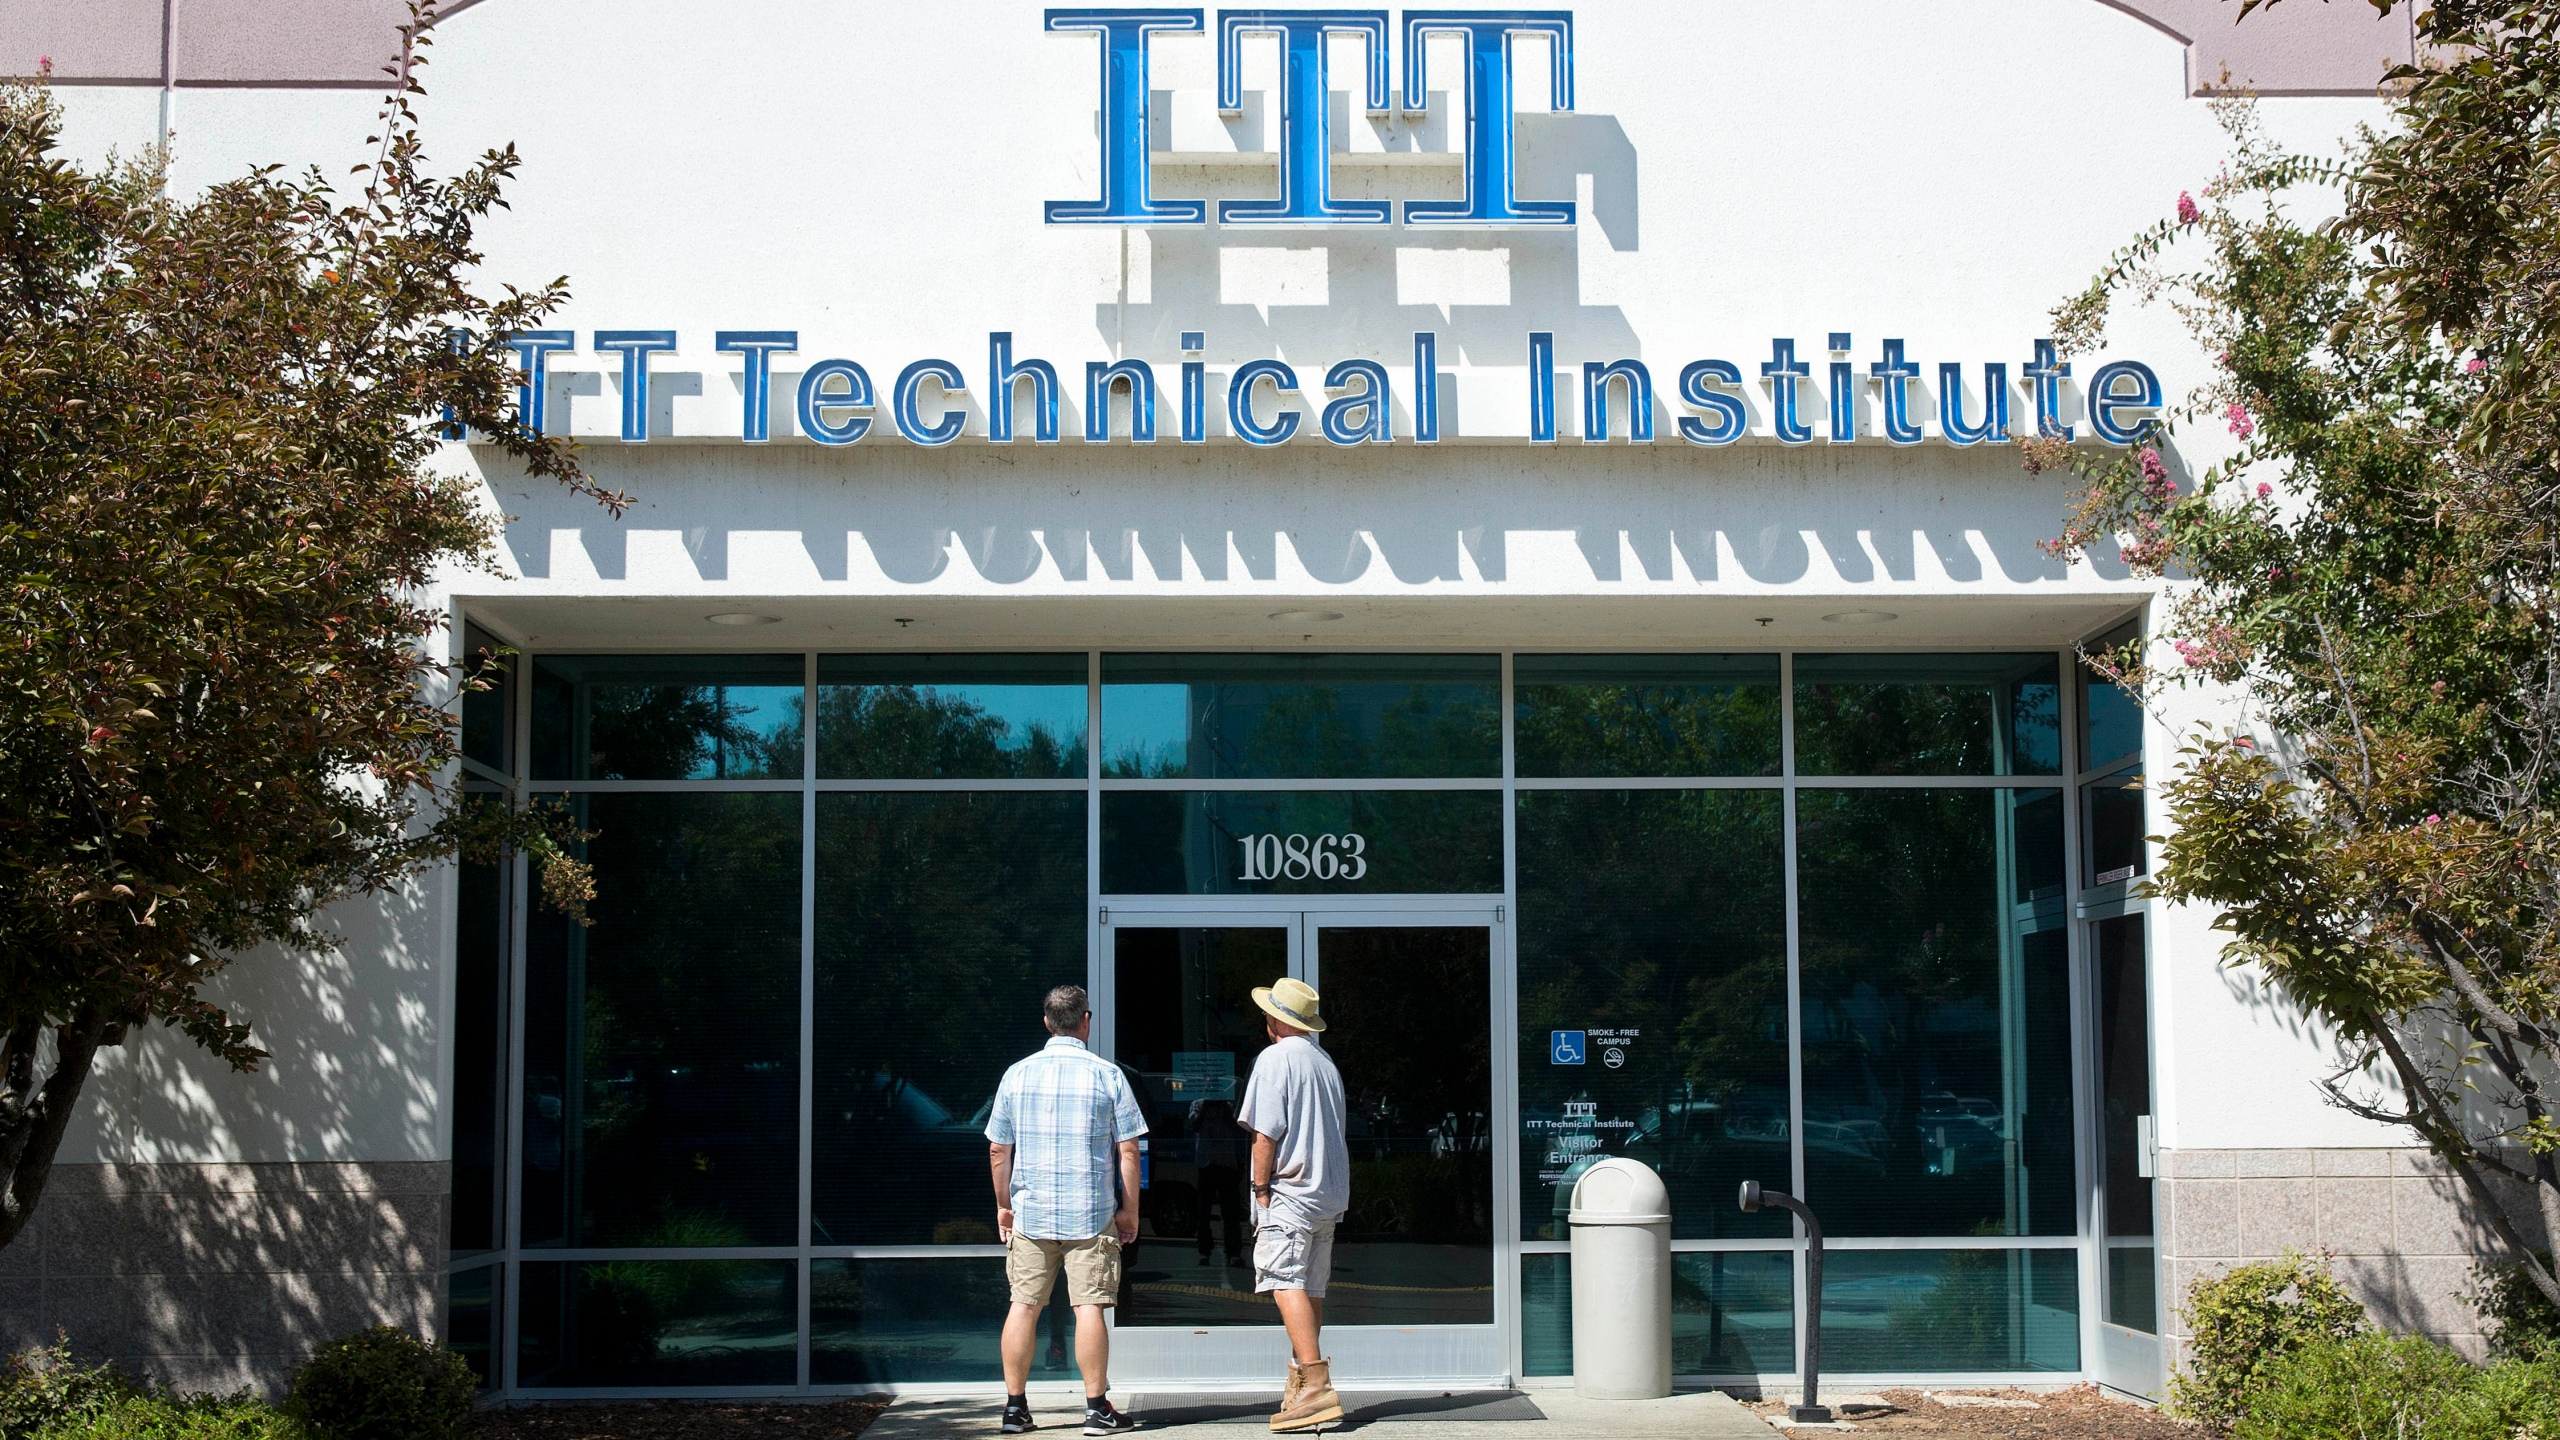 Students find the doors locked to the ITT Technical Institute campus in Rancho Cordova, Calif. (AP Photo/Rich Pedroncelli, File)